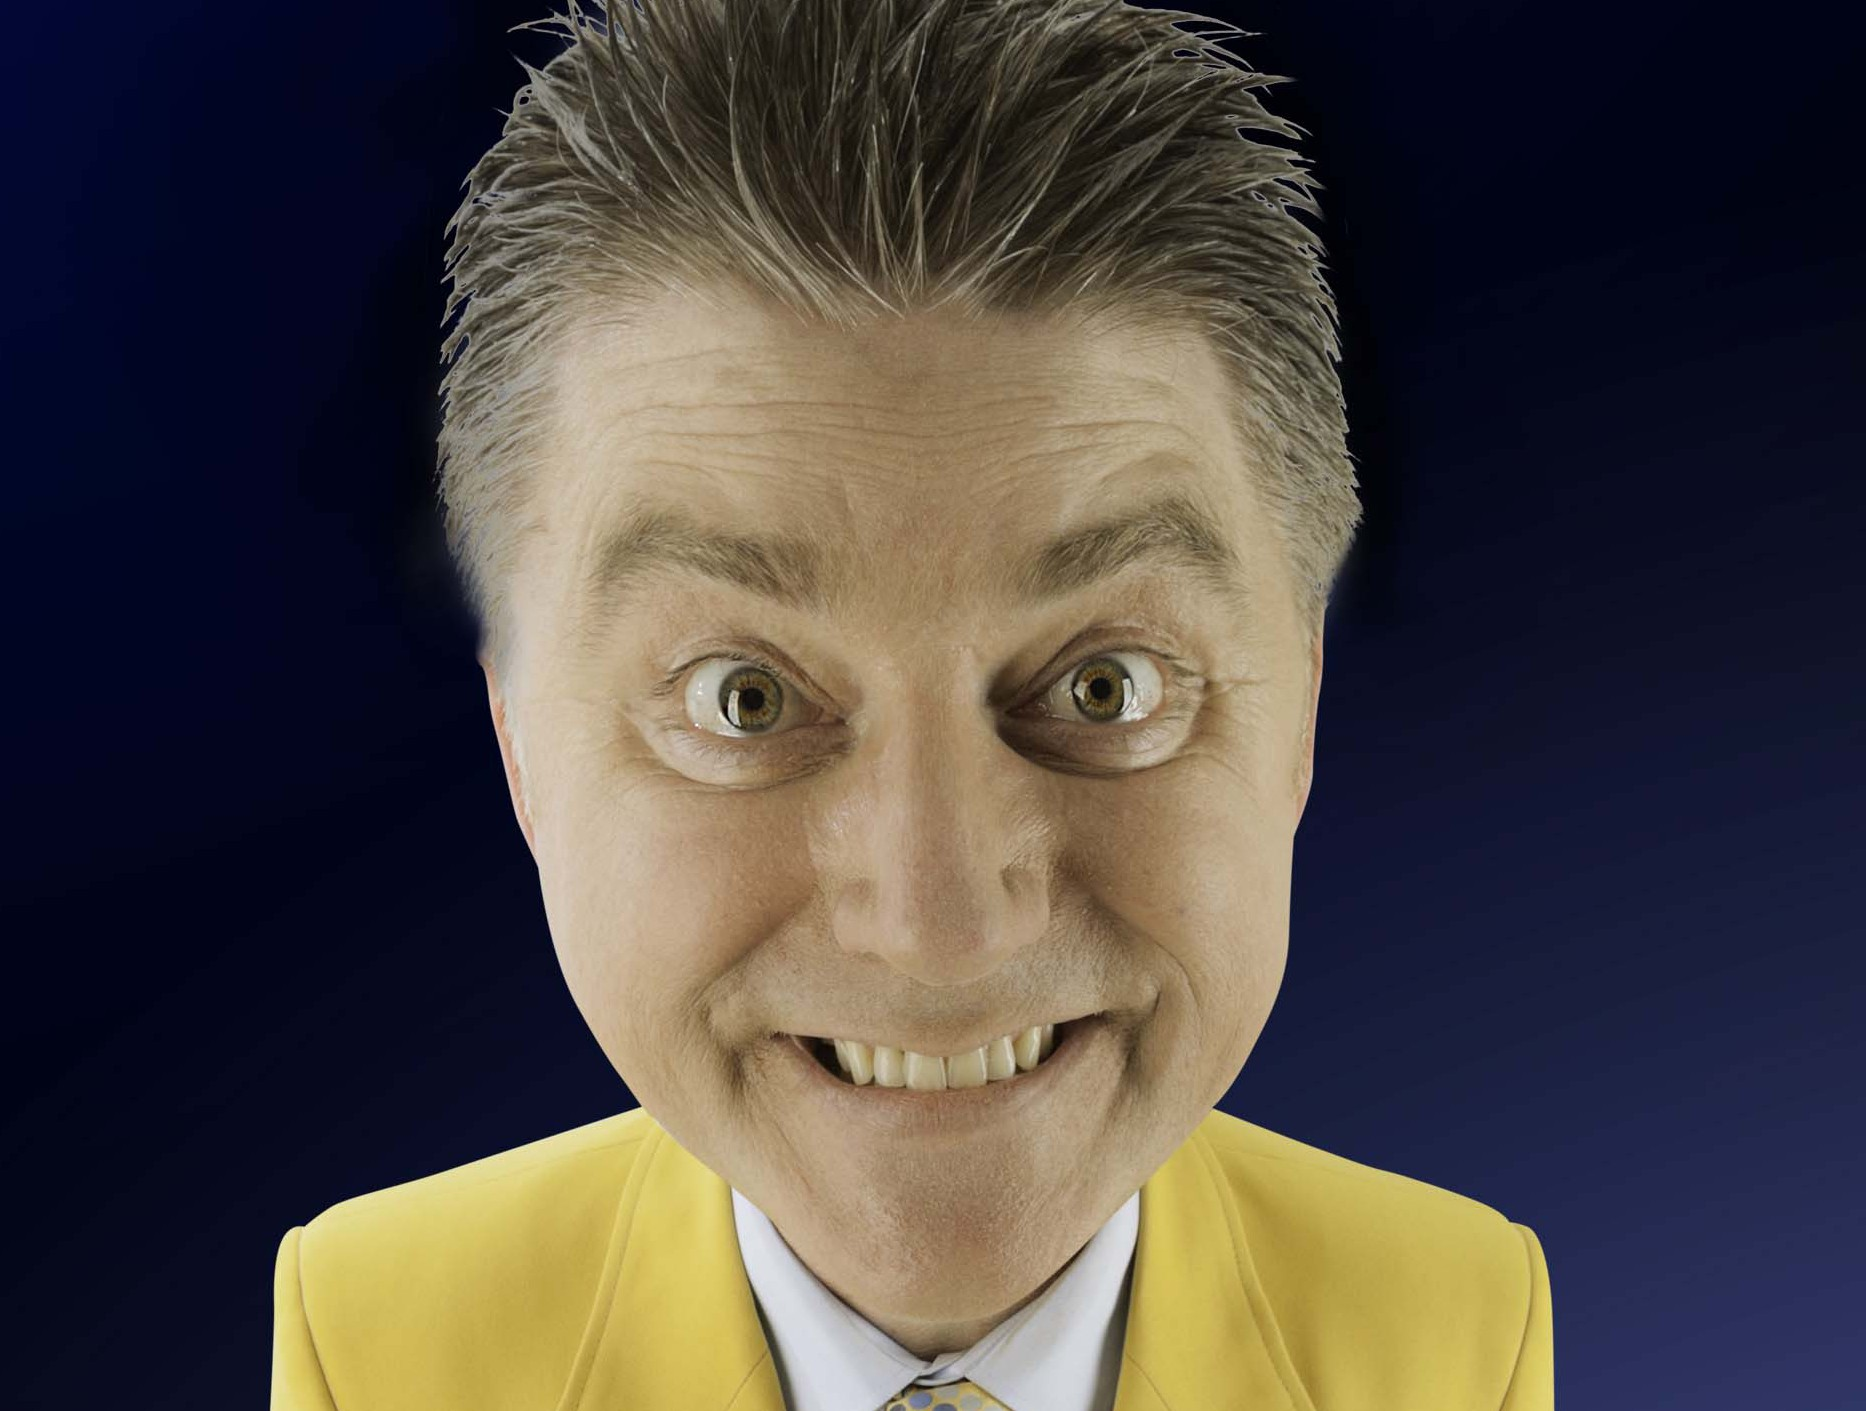 PAT SHORTT: I AM TH